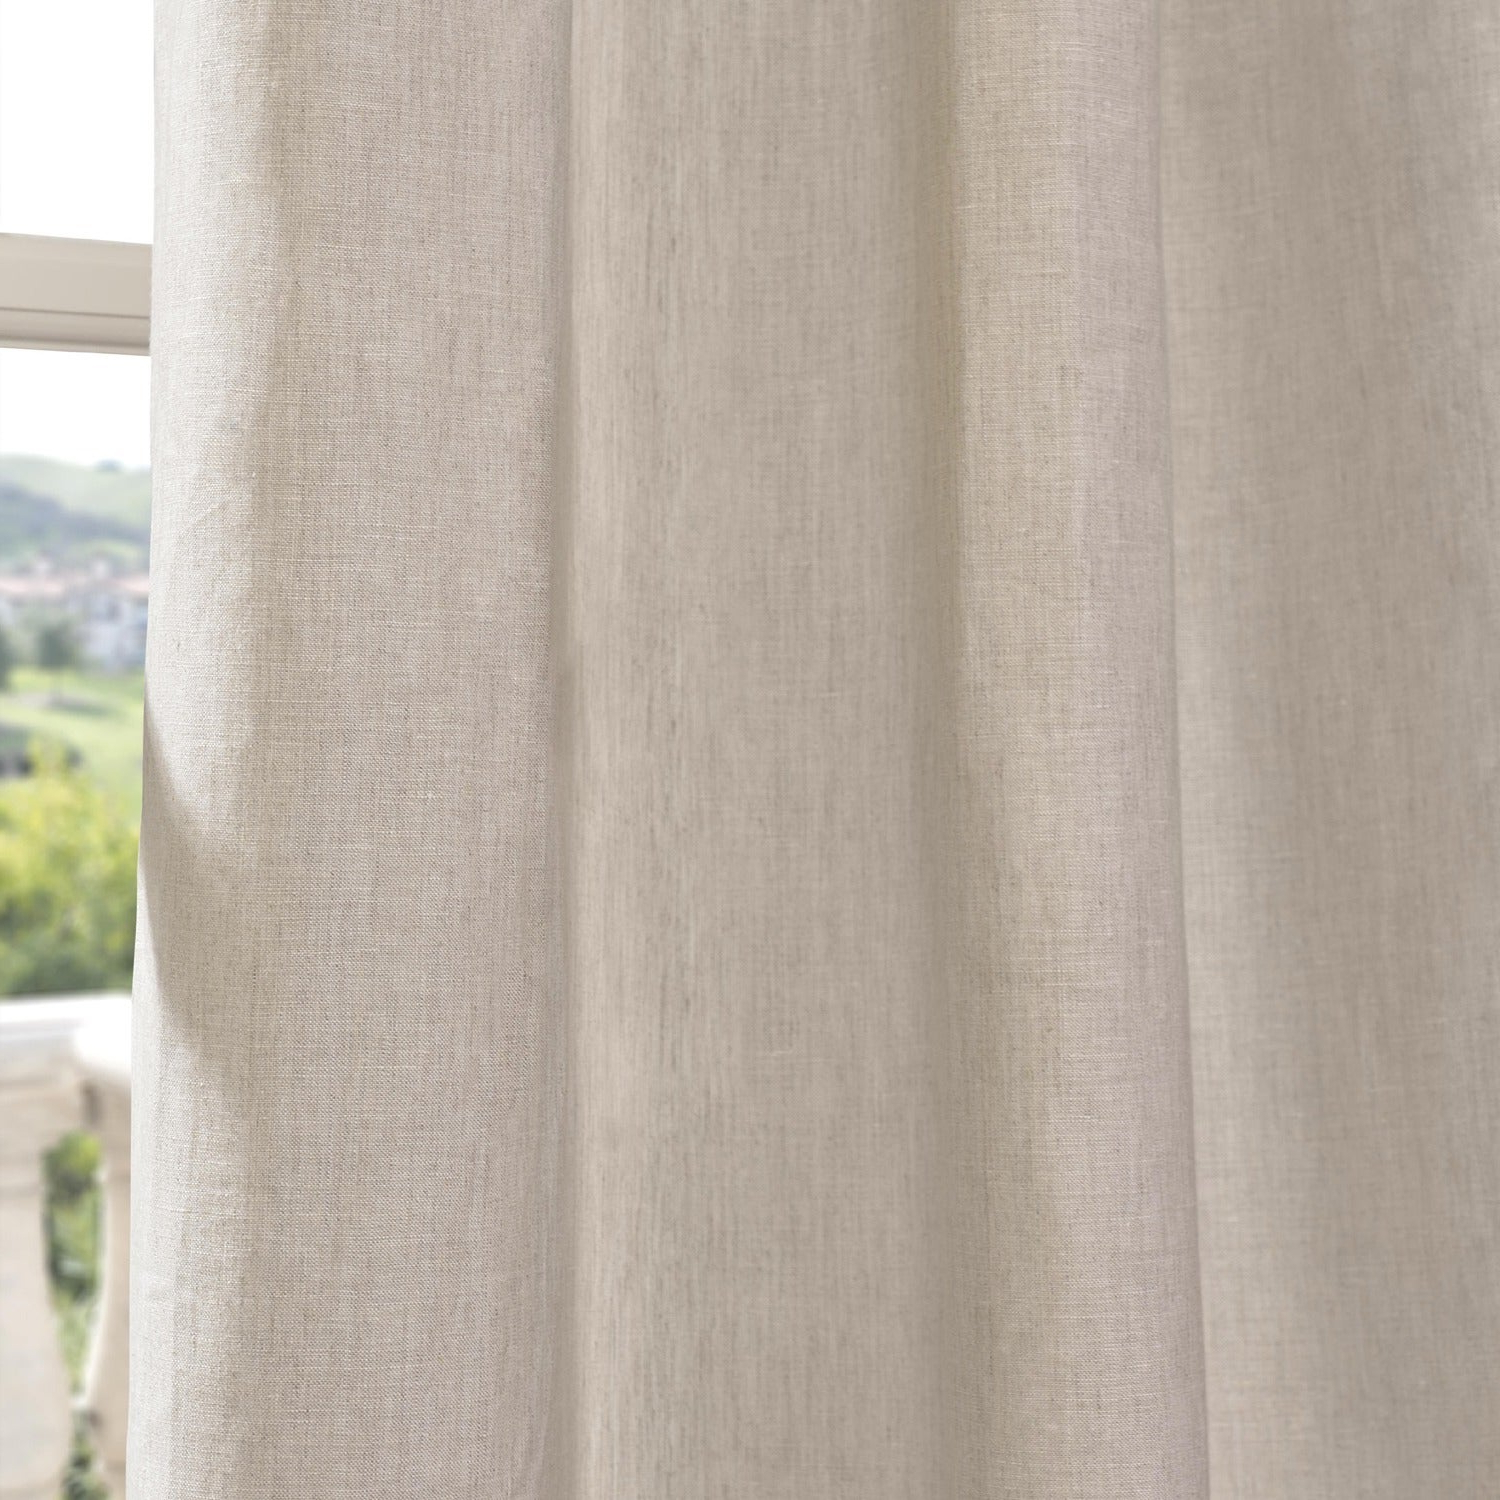 Signature French Linen Curtain Panels For Fashionable Exclusive Fabrics Signature French Linen Curtain Panel (View 11 of 20)